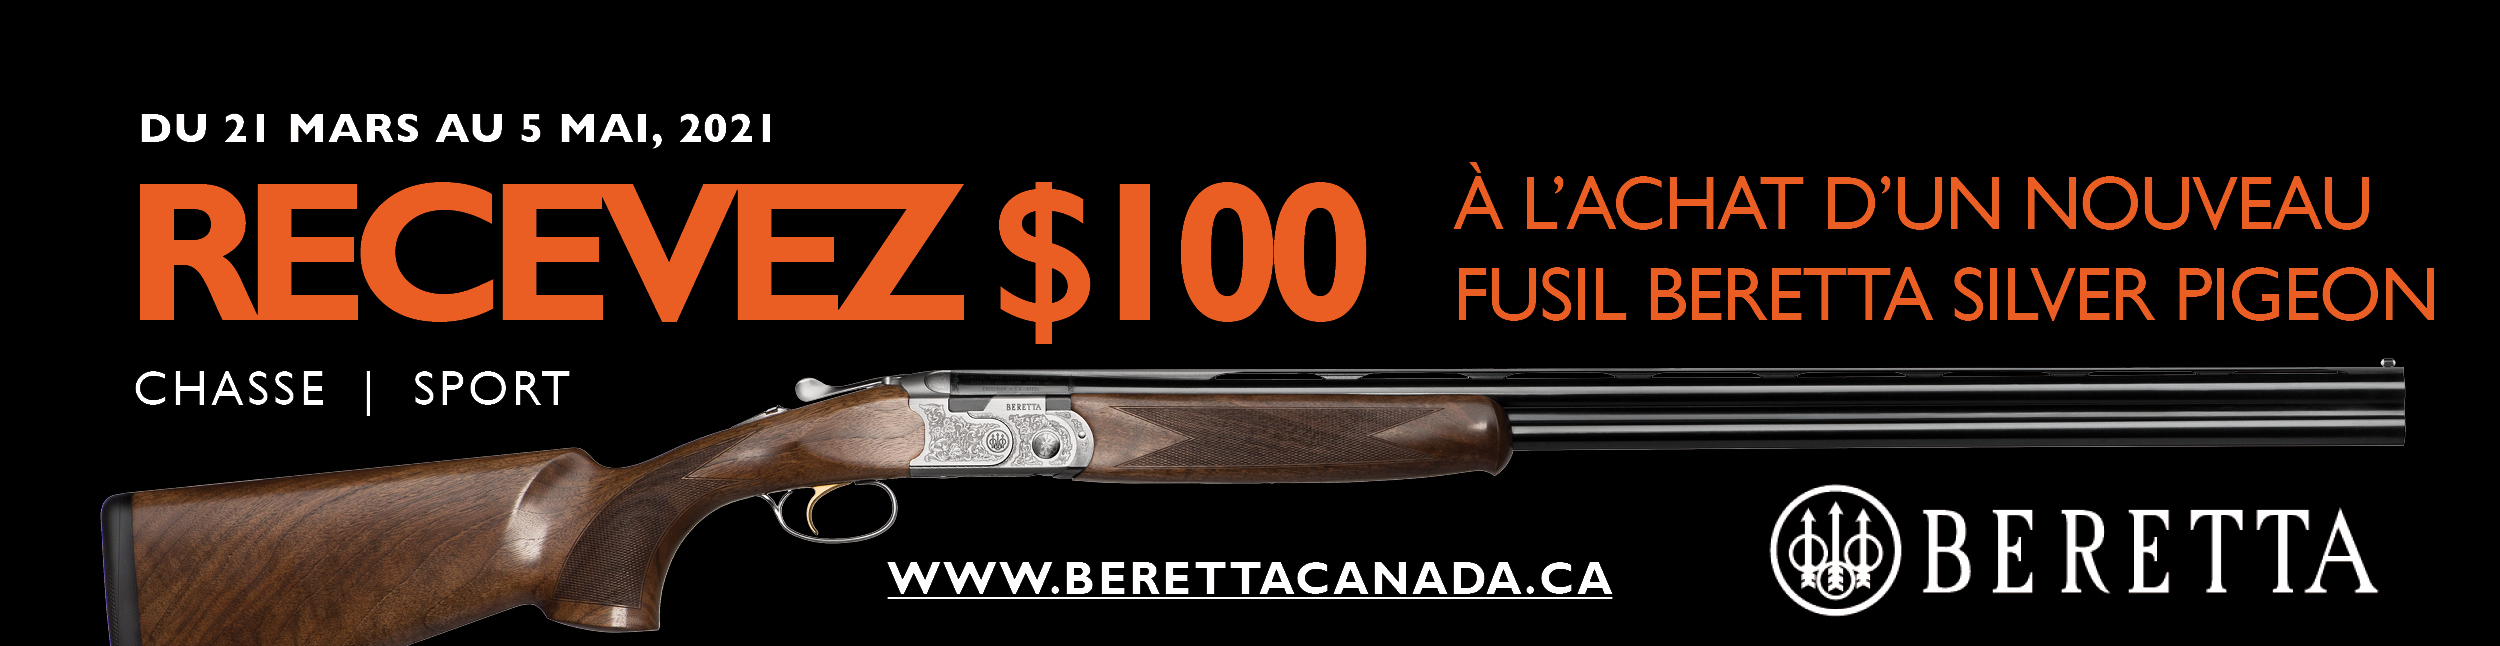 Beretta 100 off SP Promotion 2021 - Banner 600x155 - FR